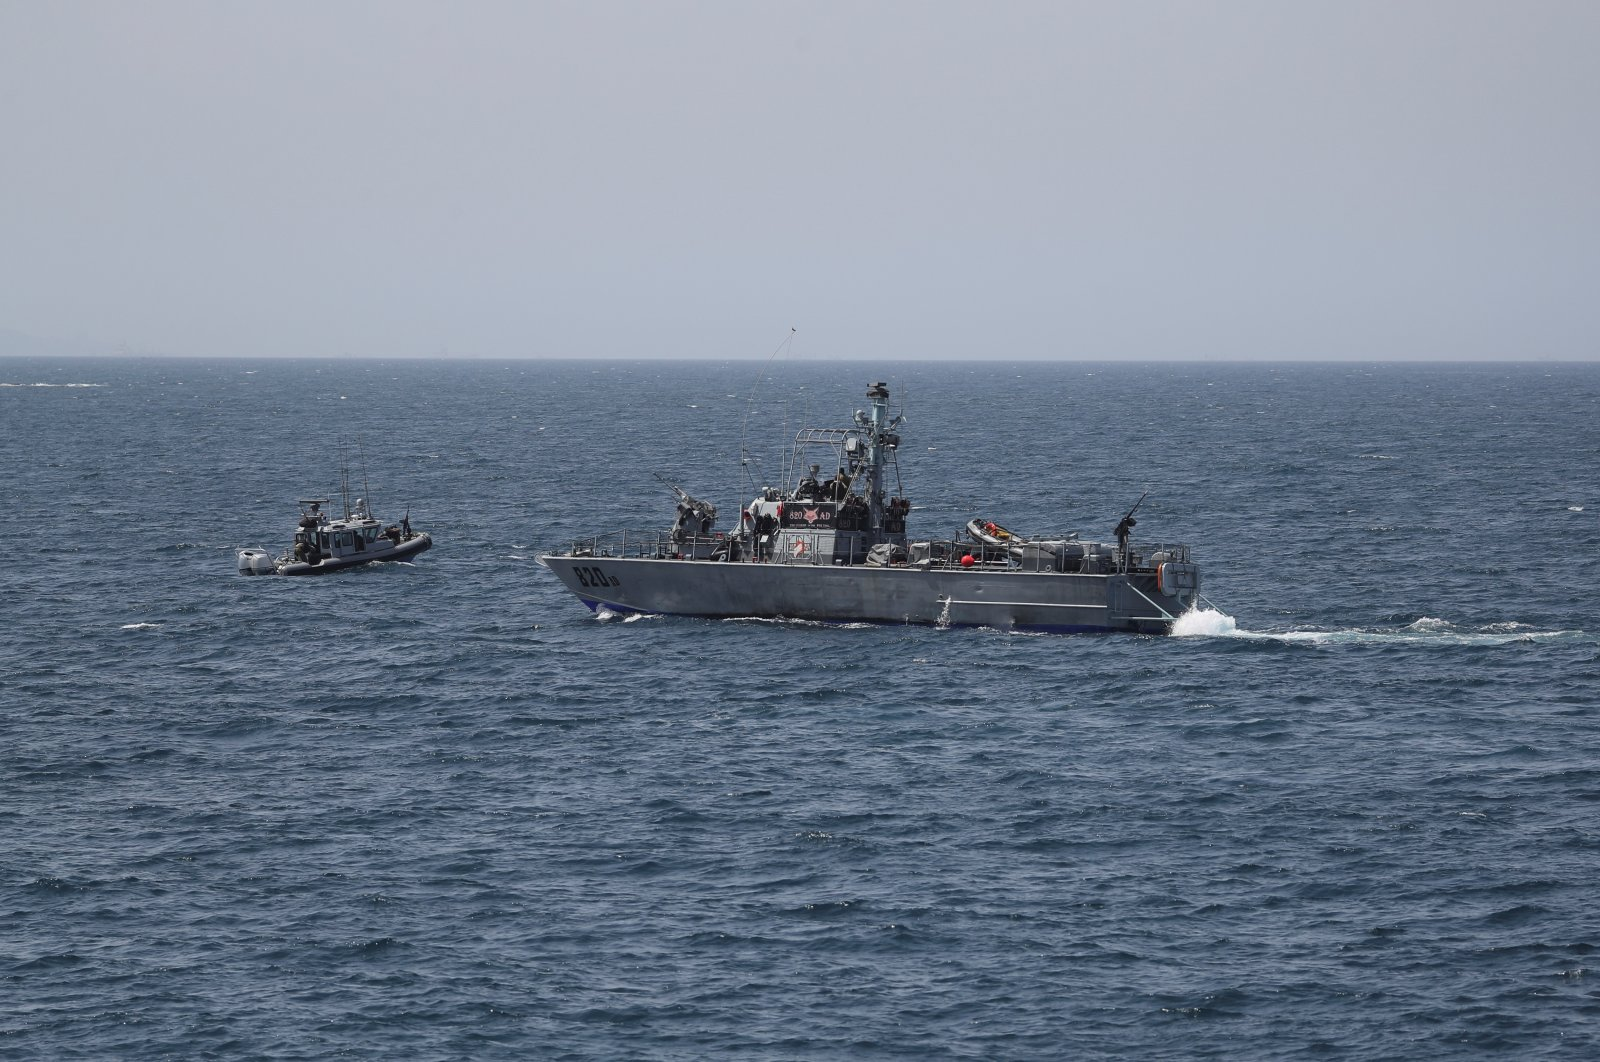 Israeli Navy boats are seen in the Mediterranean Sea as seen from Rosh Hanikra, close to the Lebanese border, northern Israel May 4, 2021. (Reuters Photo)